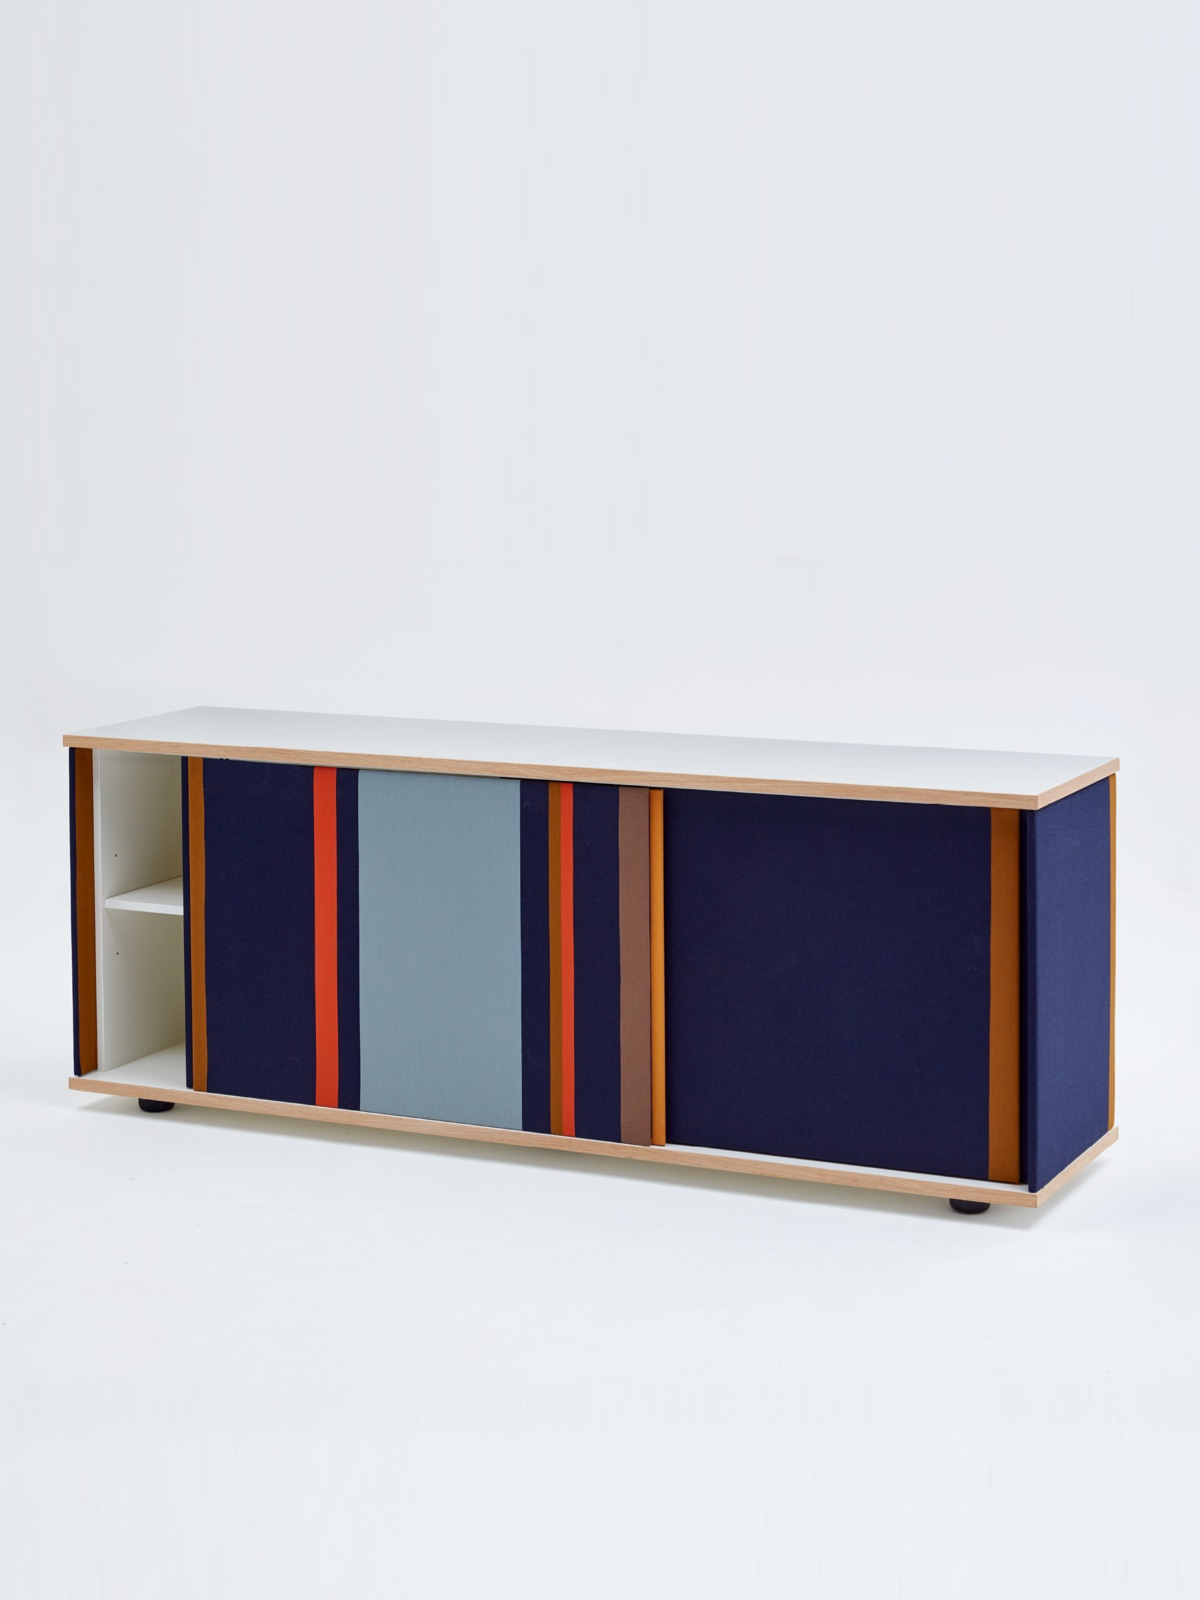 Softbox Storage Credenza